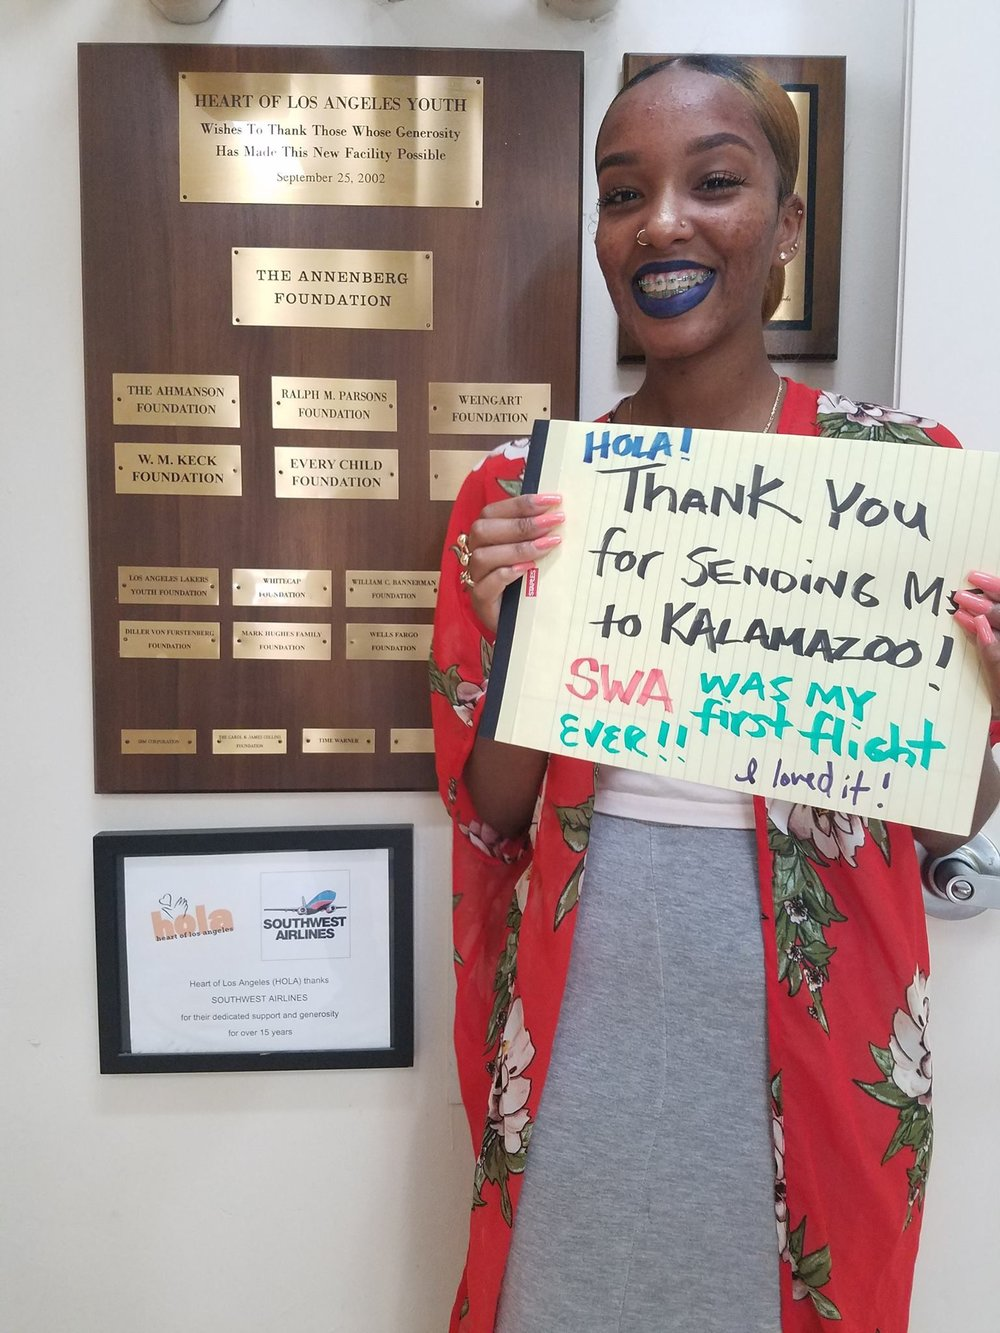 """""""Thank you for sending me to Kalamazoo [College]! Southwest Airlines was my first flight ever. I loved it!"""""""